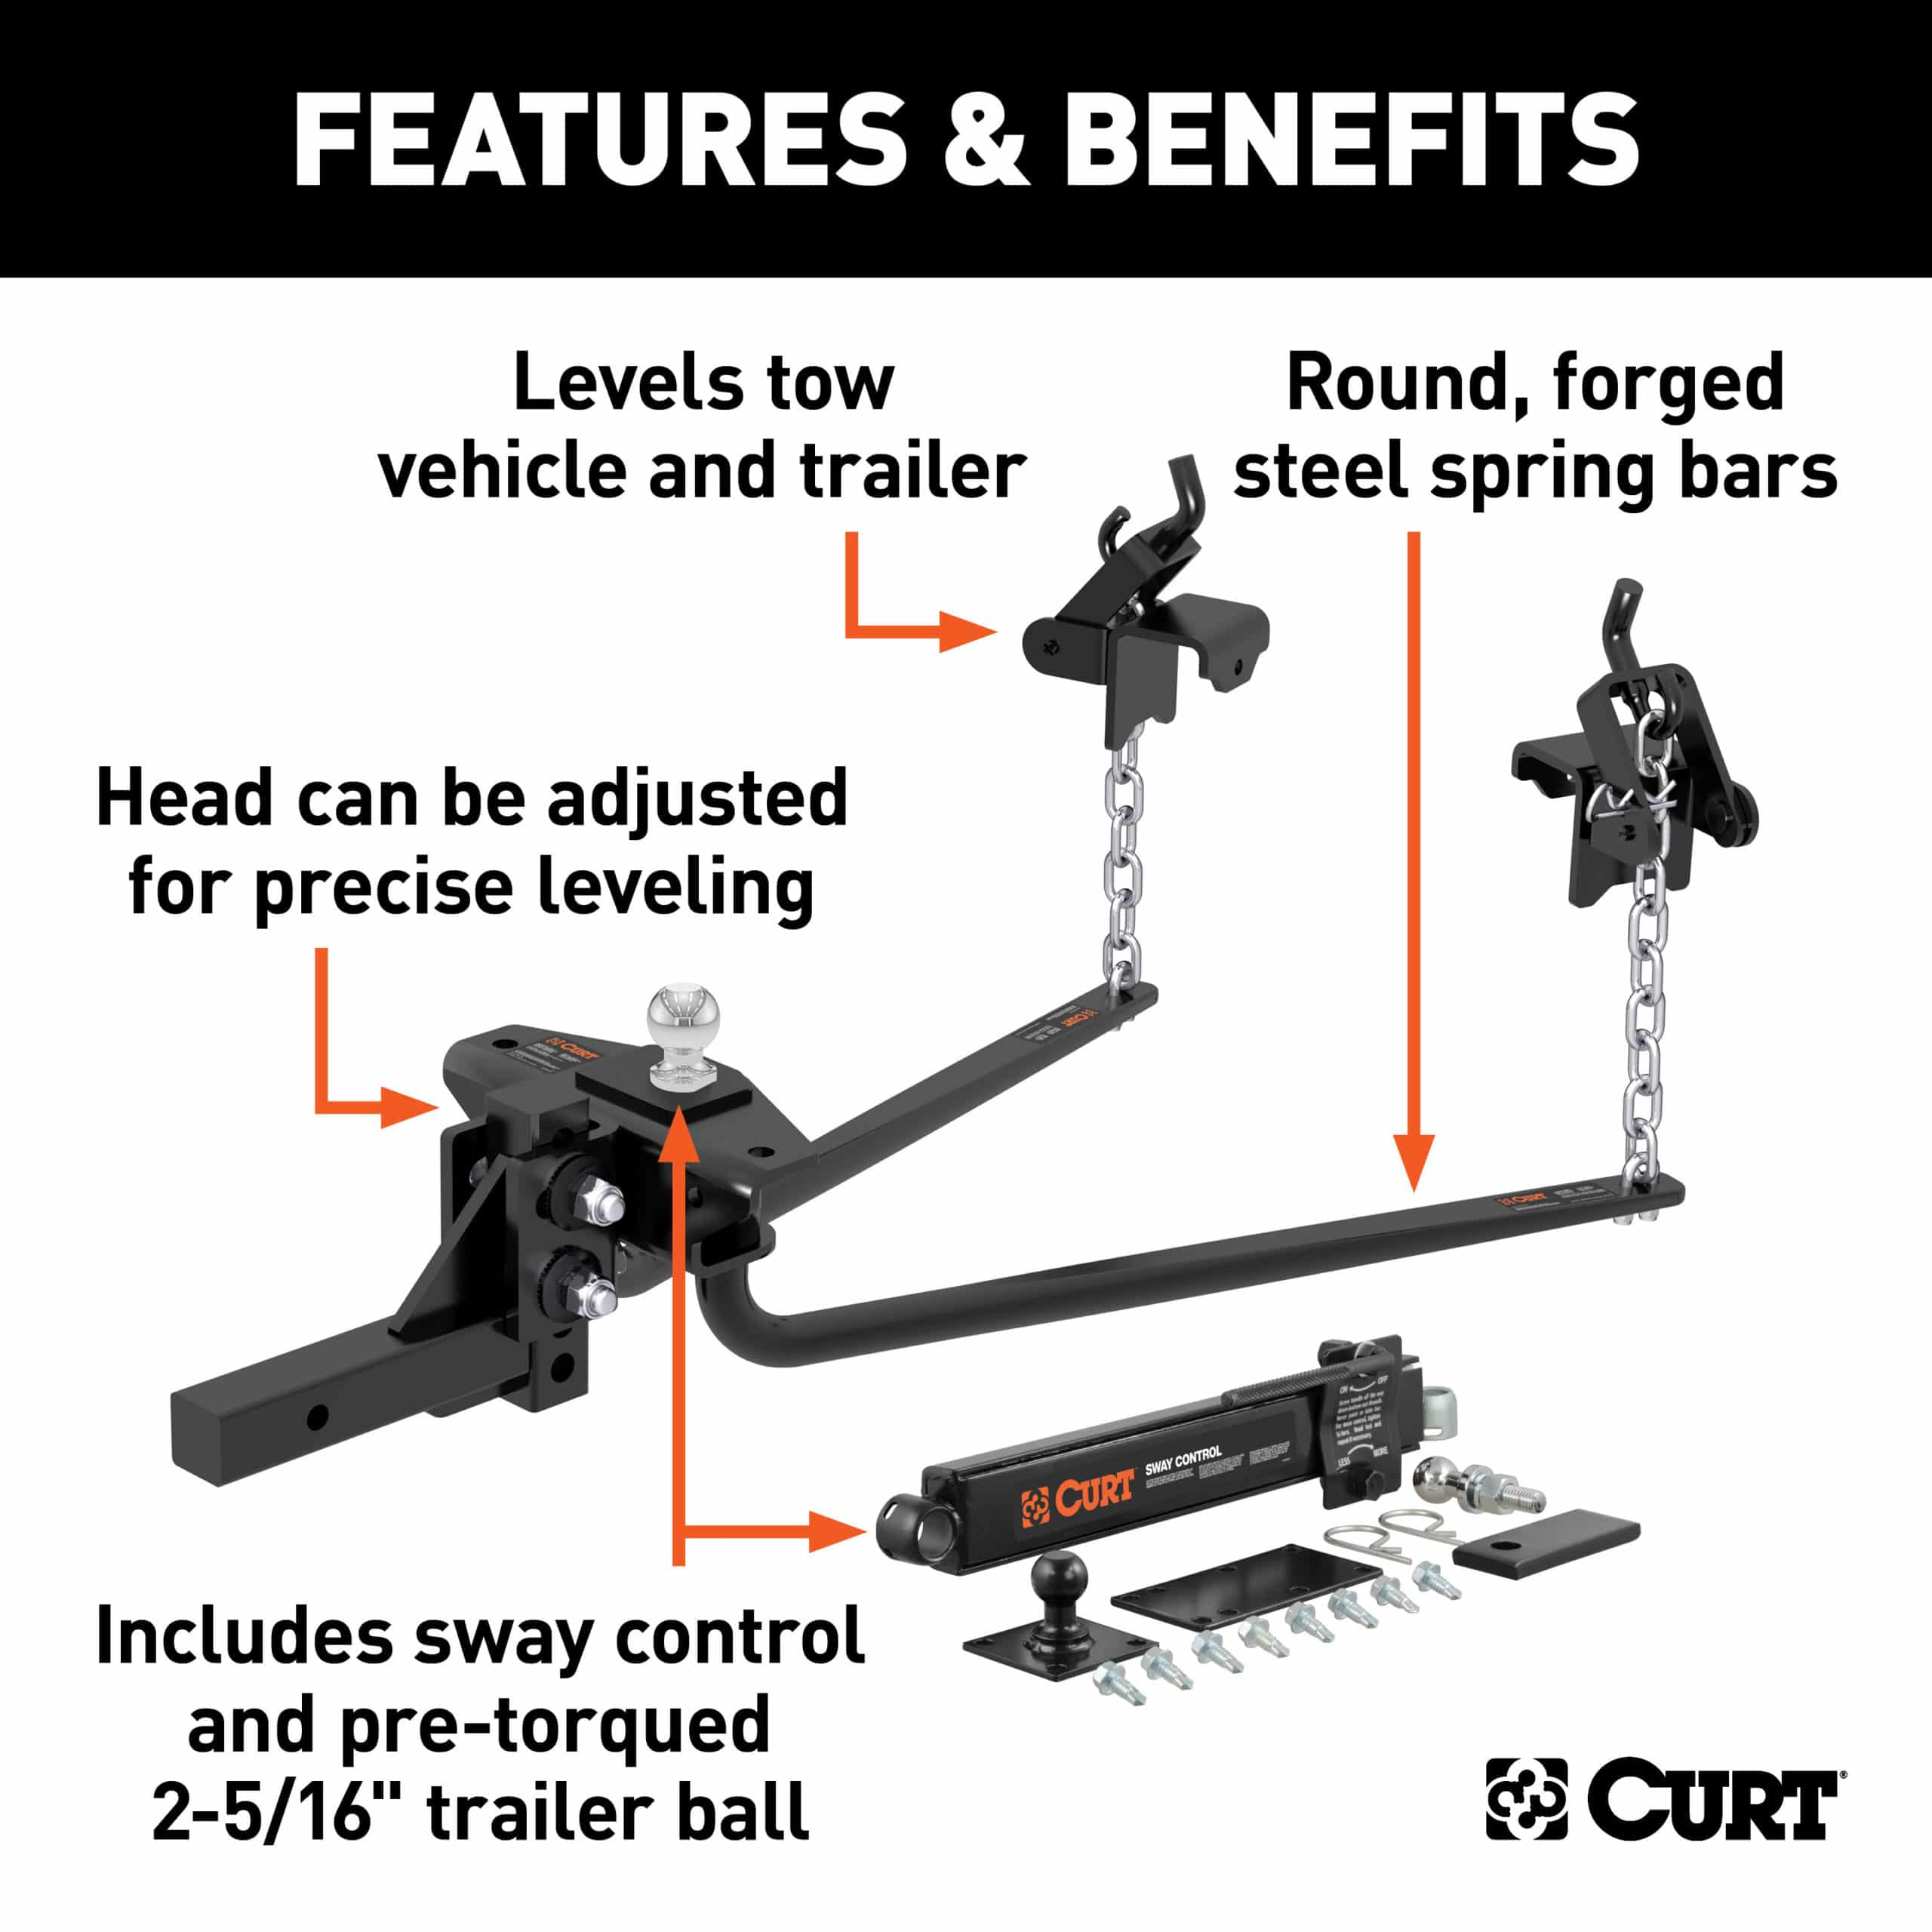 Curt Combo Features and Benefits